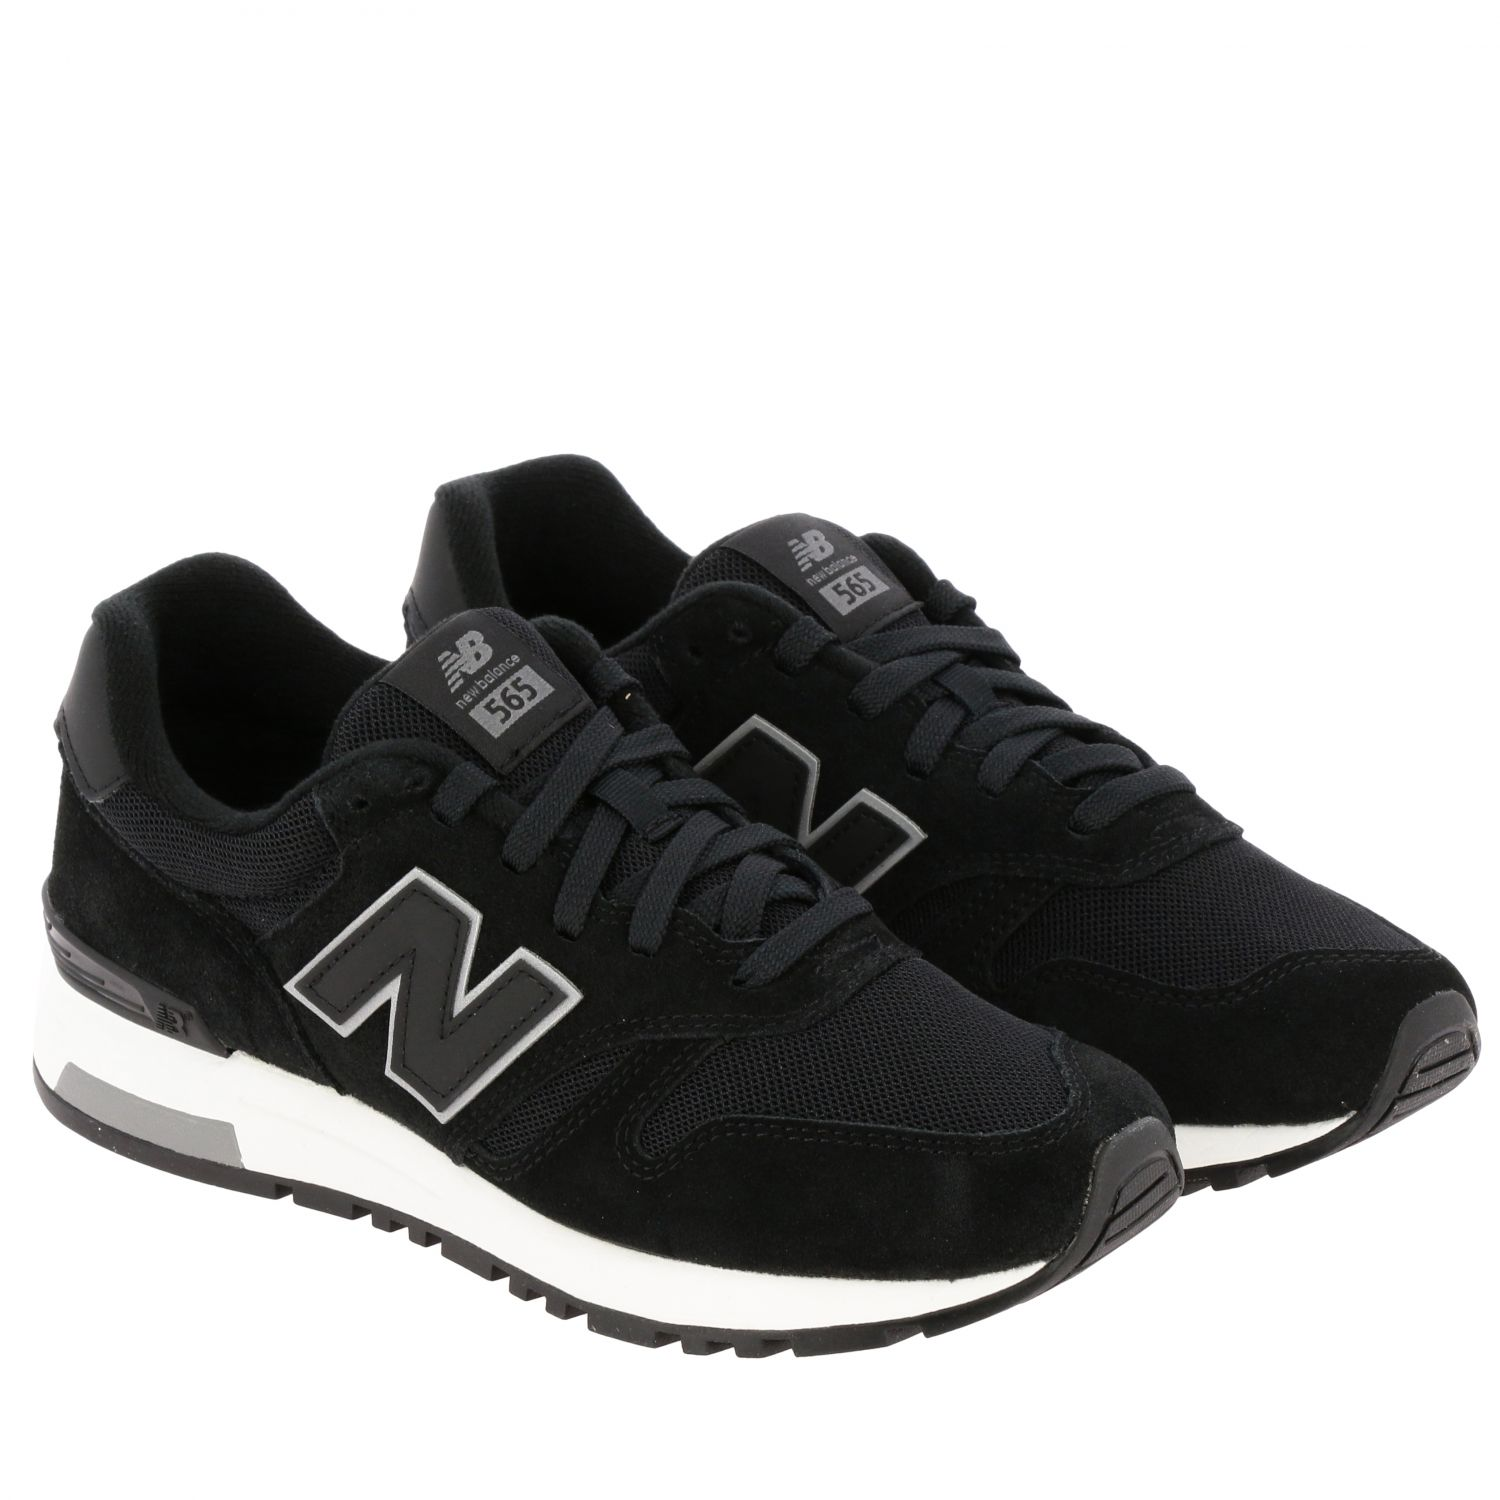 Trainers New Balance: Shoes men New Balance black 2